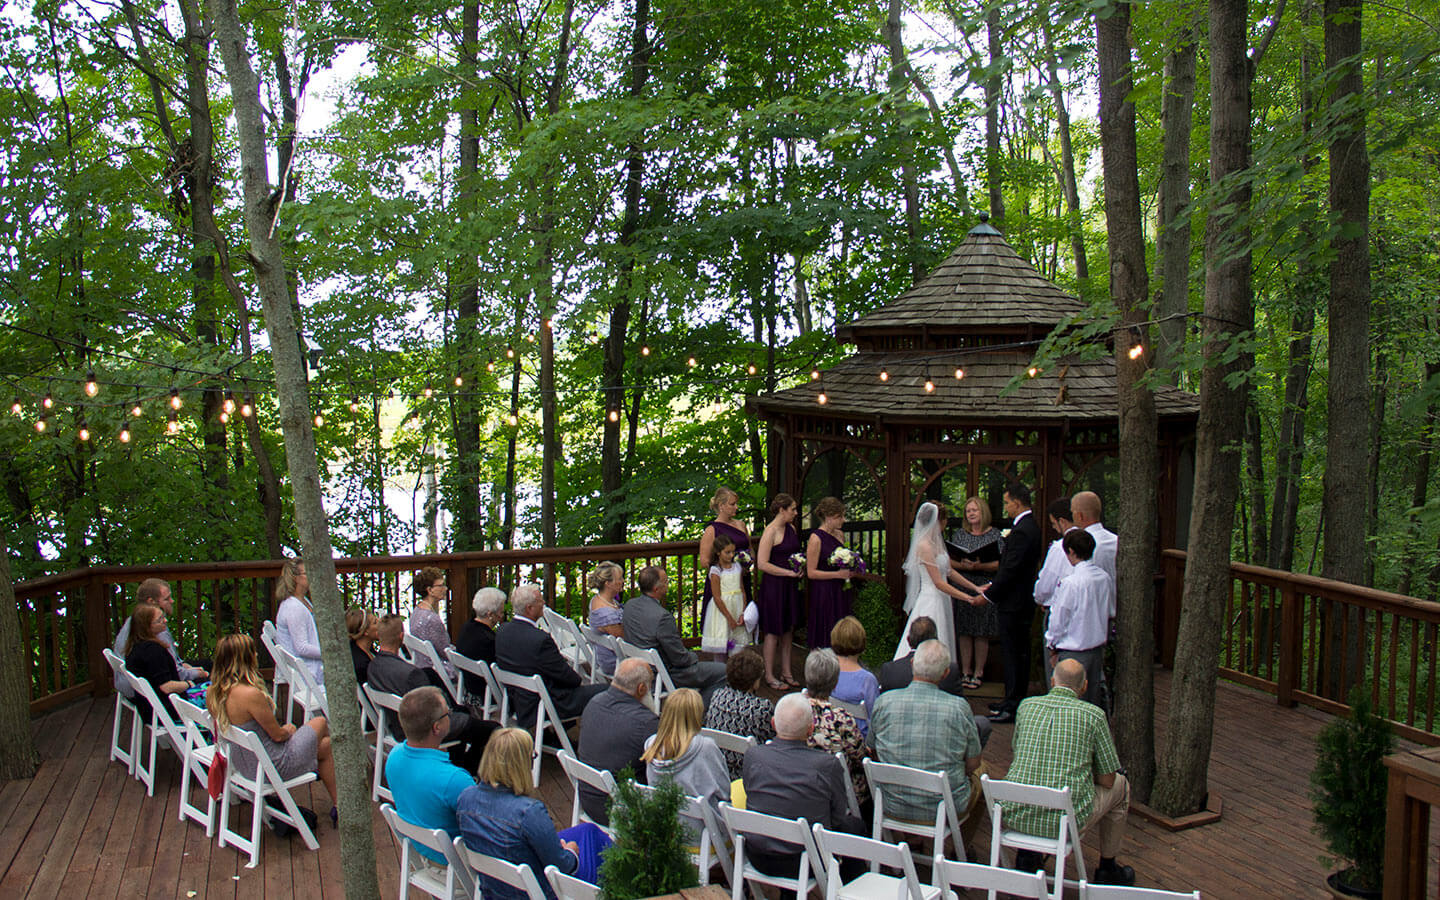 Allegan, Michigan Wedding ceremony at the gazebo